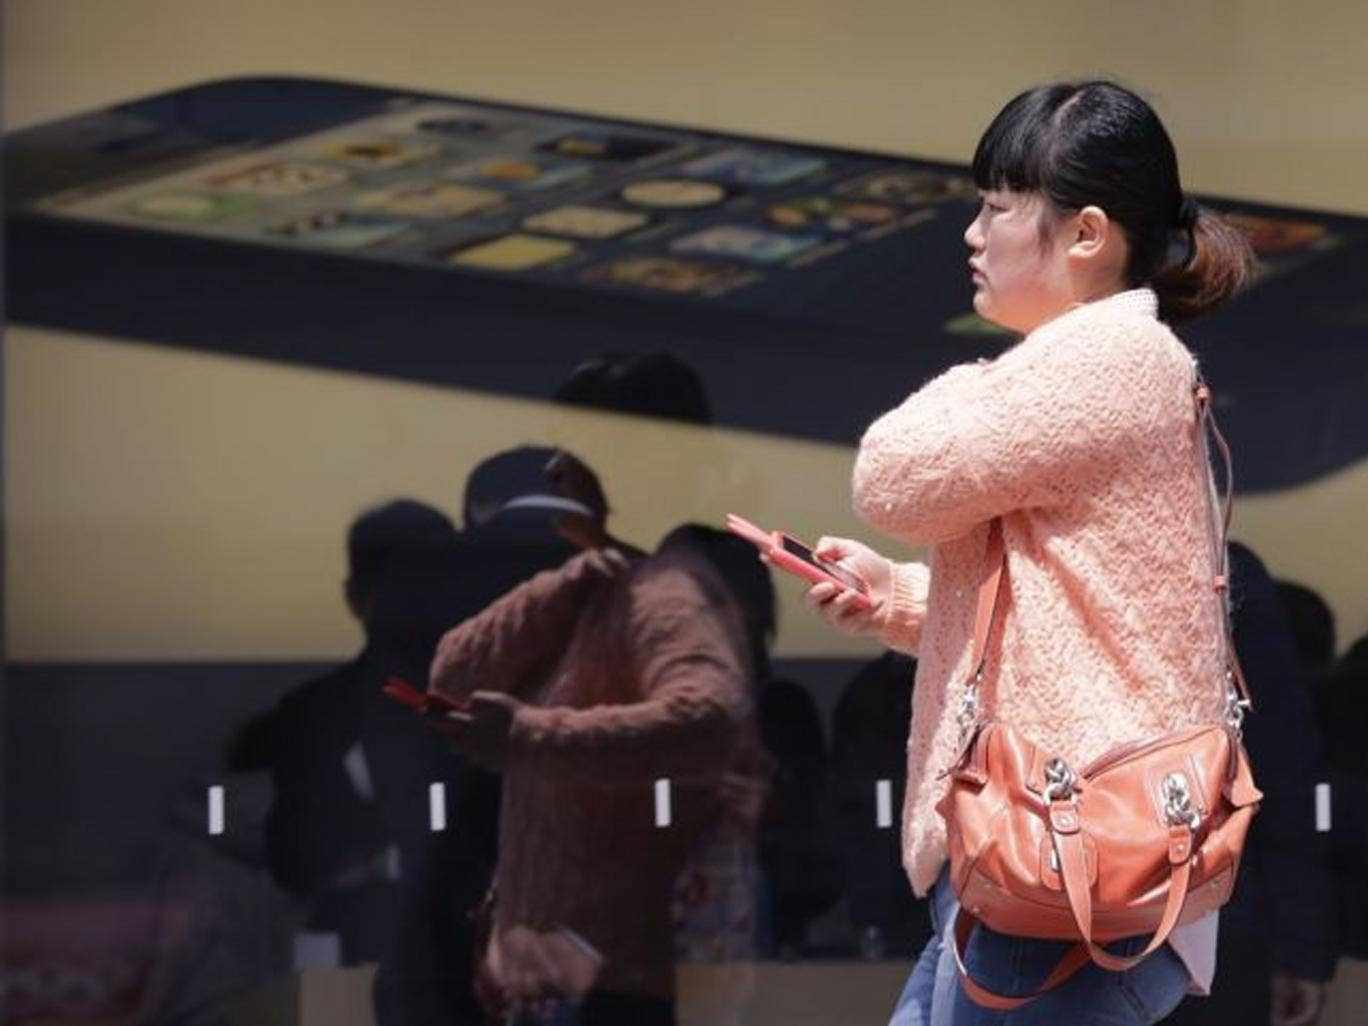 Chinese consumers revere Apple and its products